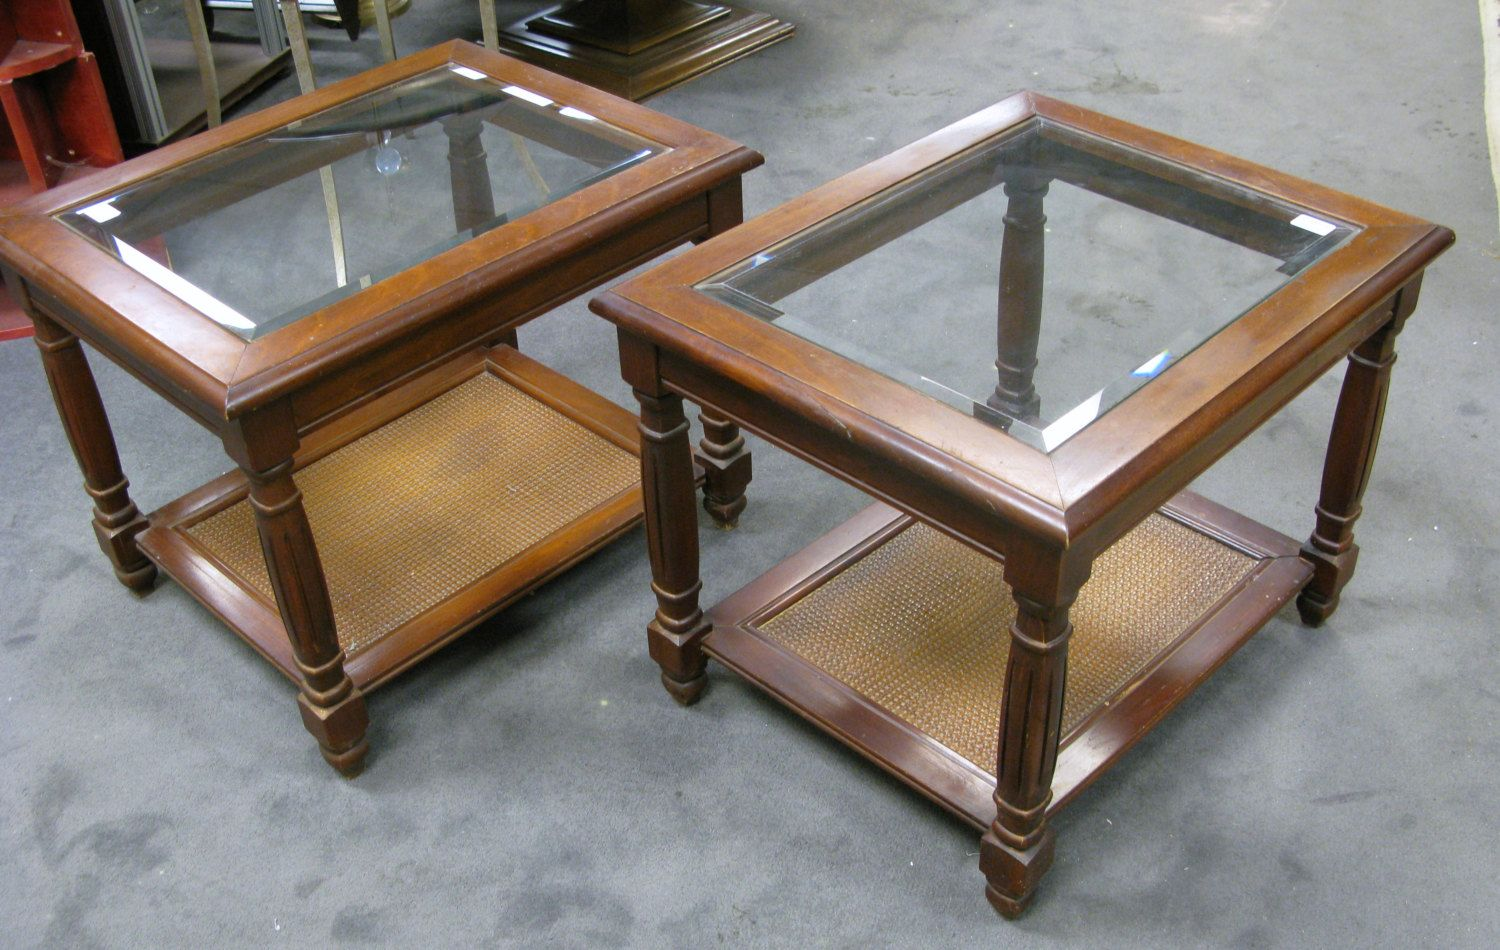 Two Mersman Side End Tables Beveled Glass Top Wicker Bottom Shelf Cherry Wood Cherry Stained Glass End Tables Glass Top End Tables Wood End Tables [ 950 x 1500 Pixel ]